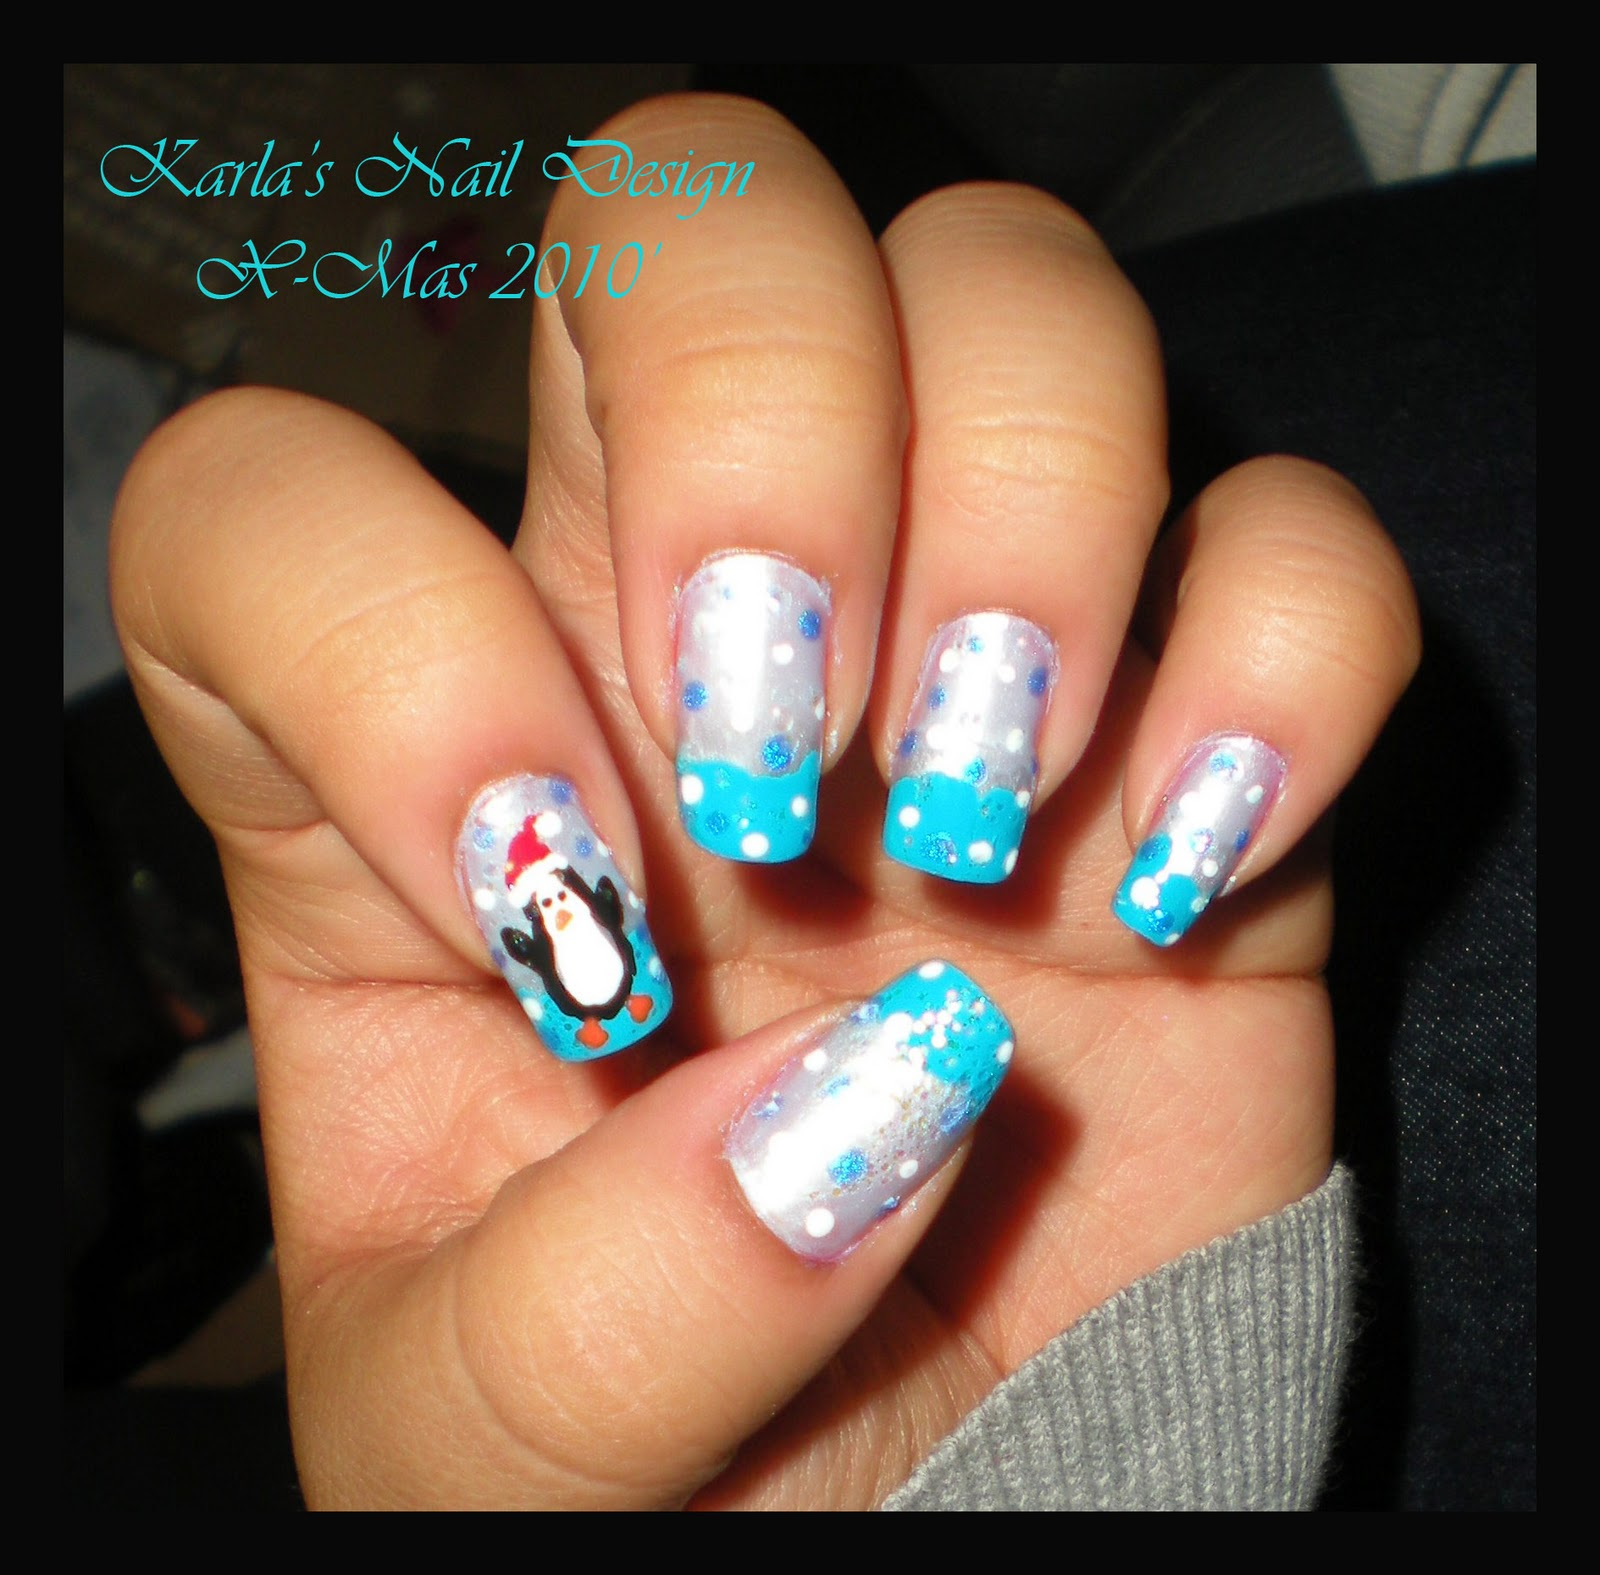 Penguin Nail Art Designs: Nail Designs For Christmas